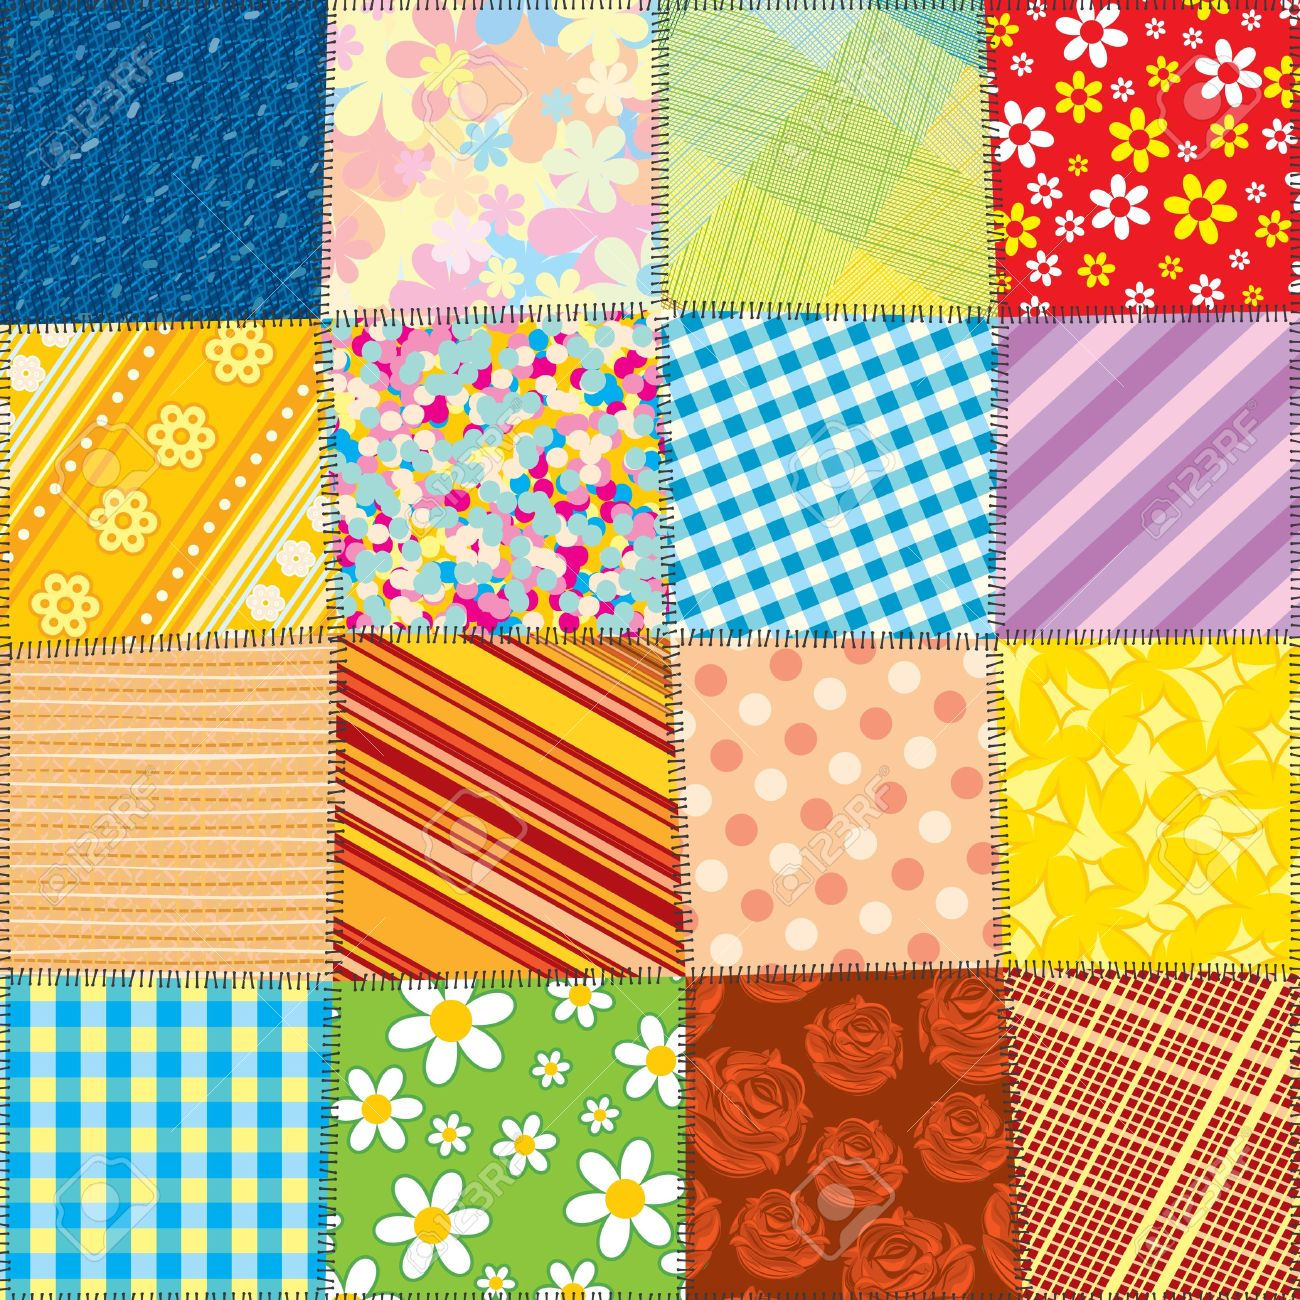 Quilt patterns clipart.